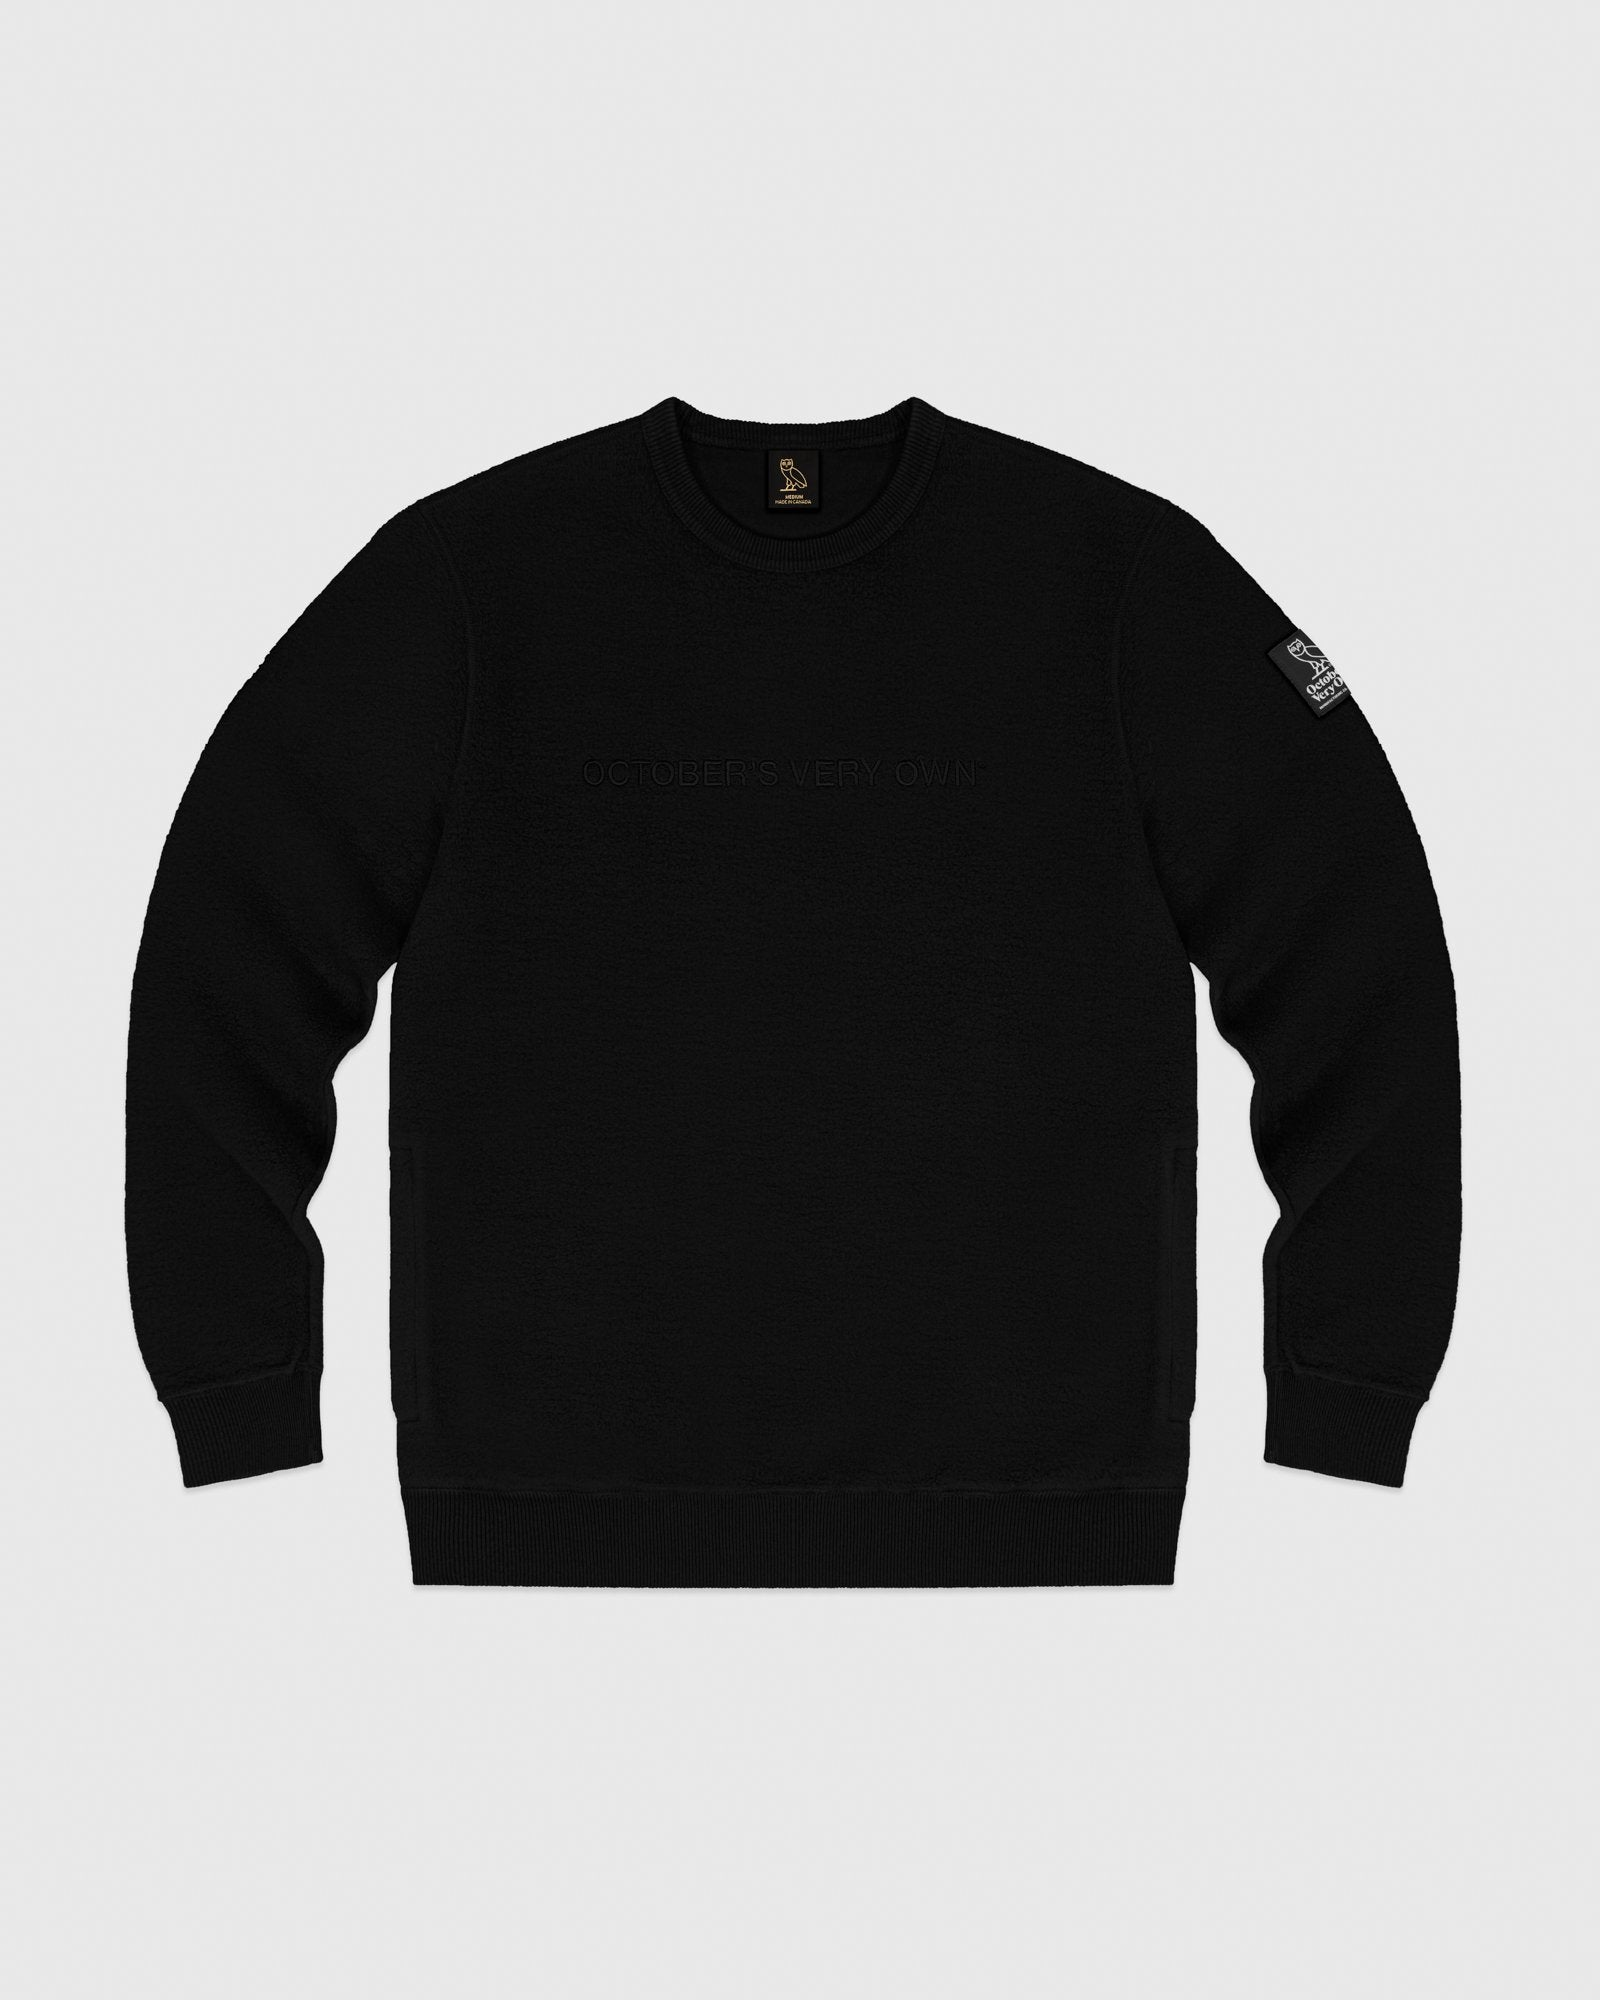 REVERSE FLEECE CREWNECK - BLACK IMAGE #1